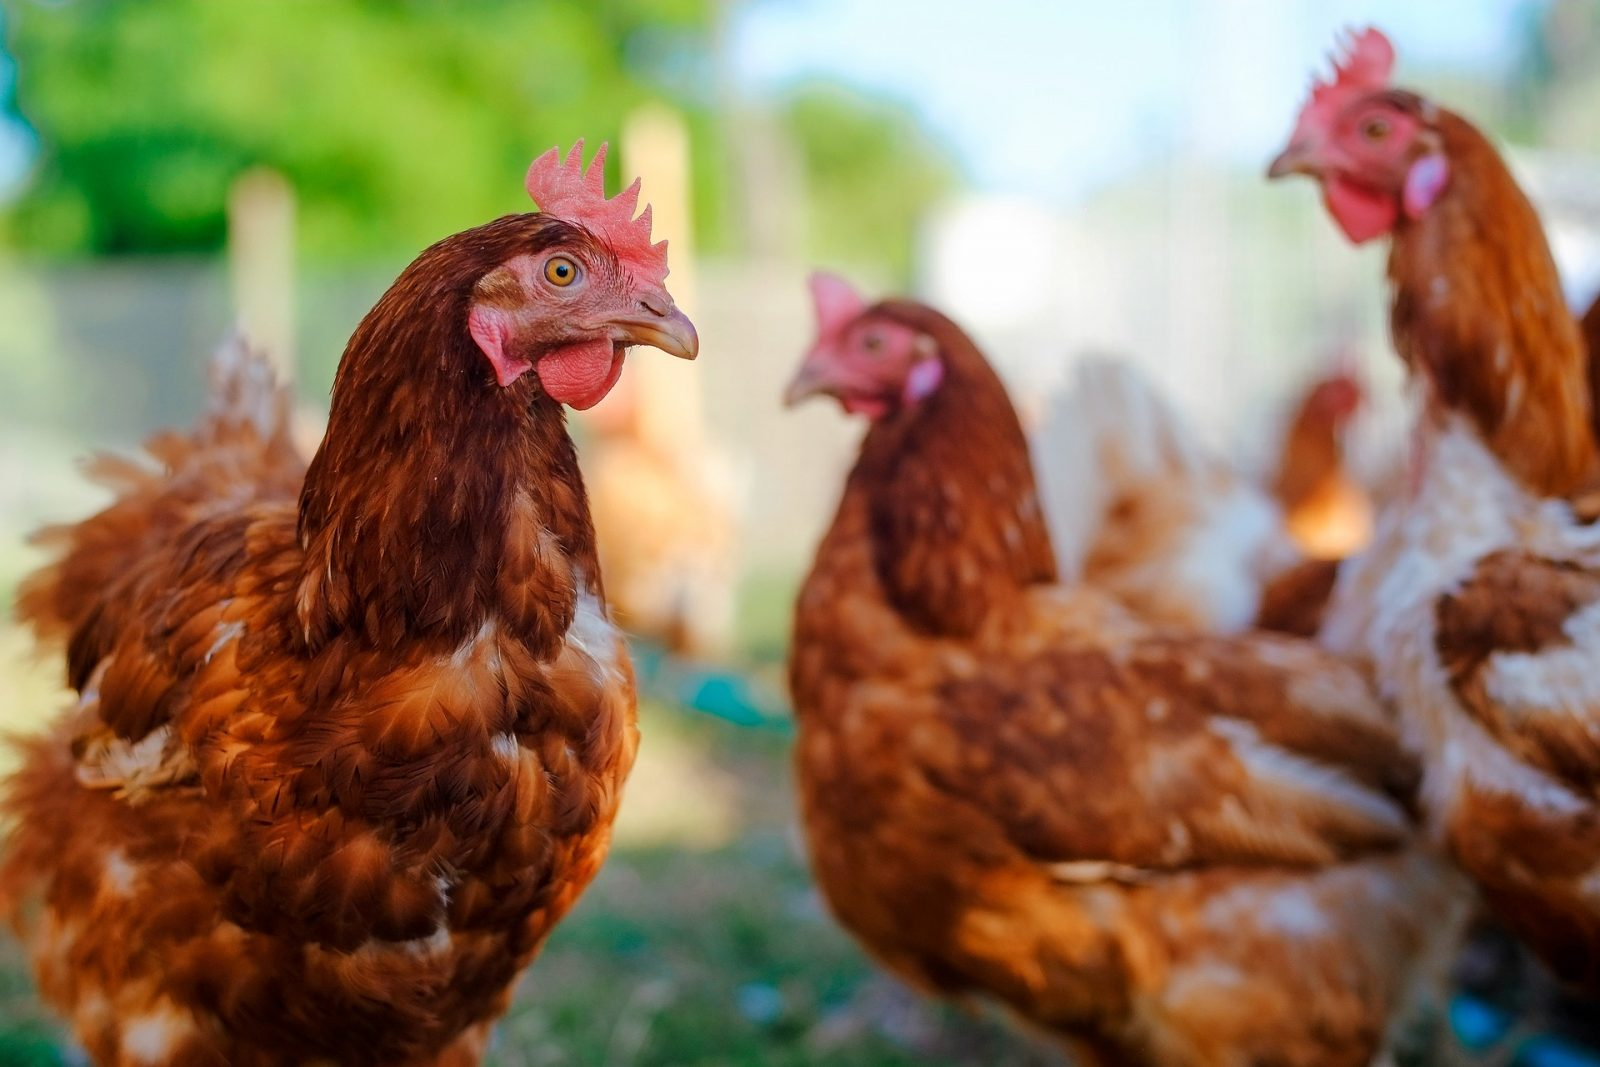 No chickens in South Glengarry villages